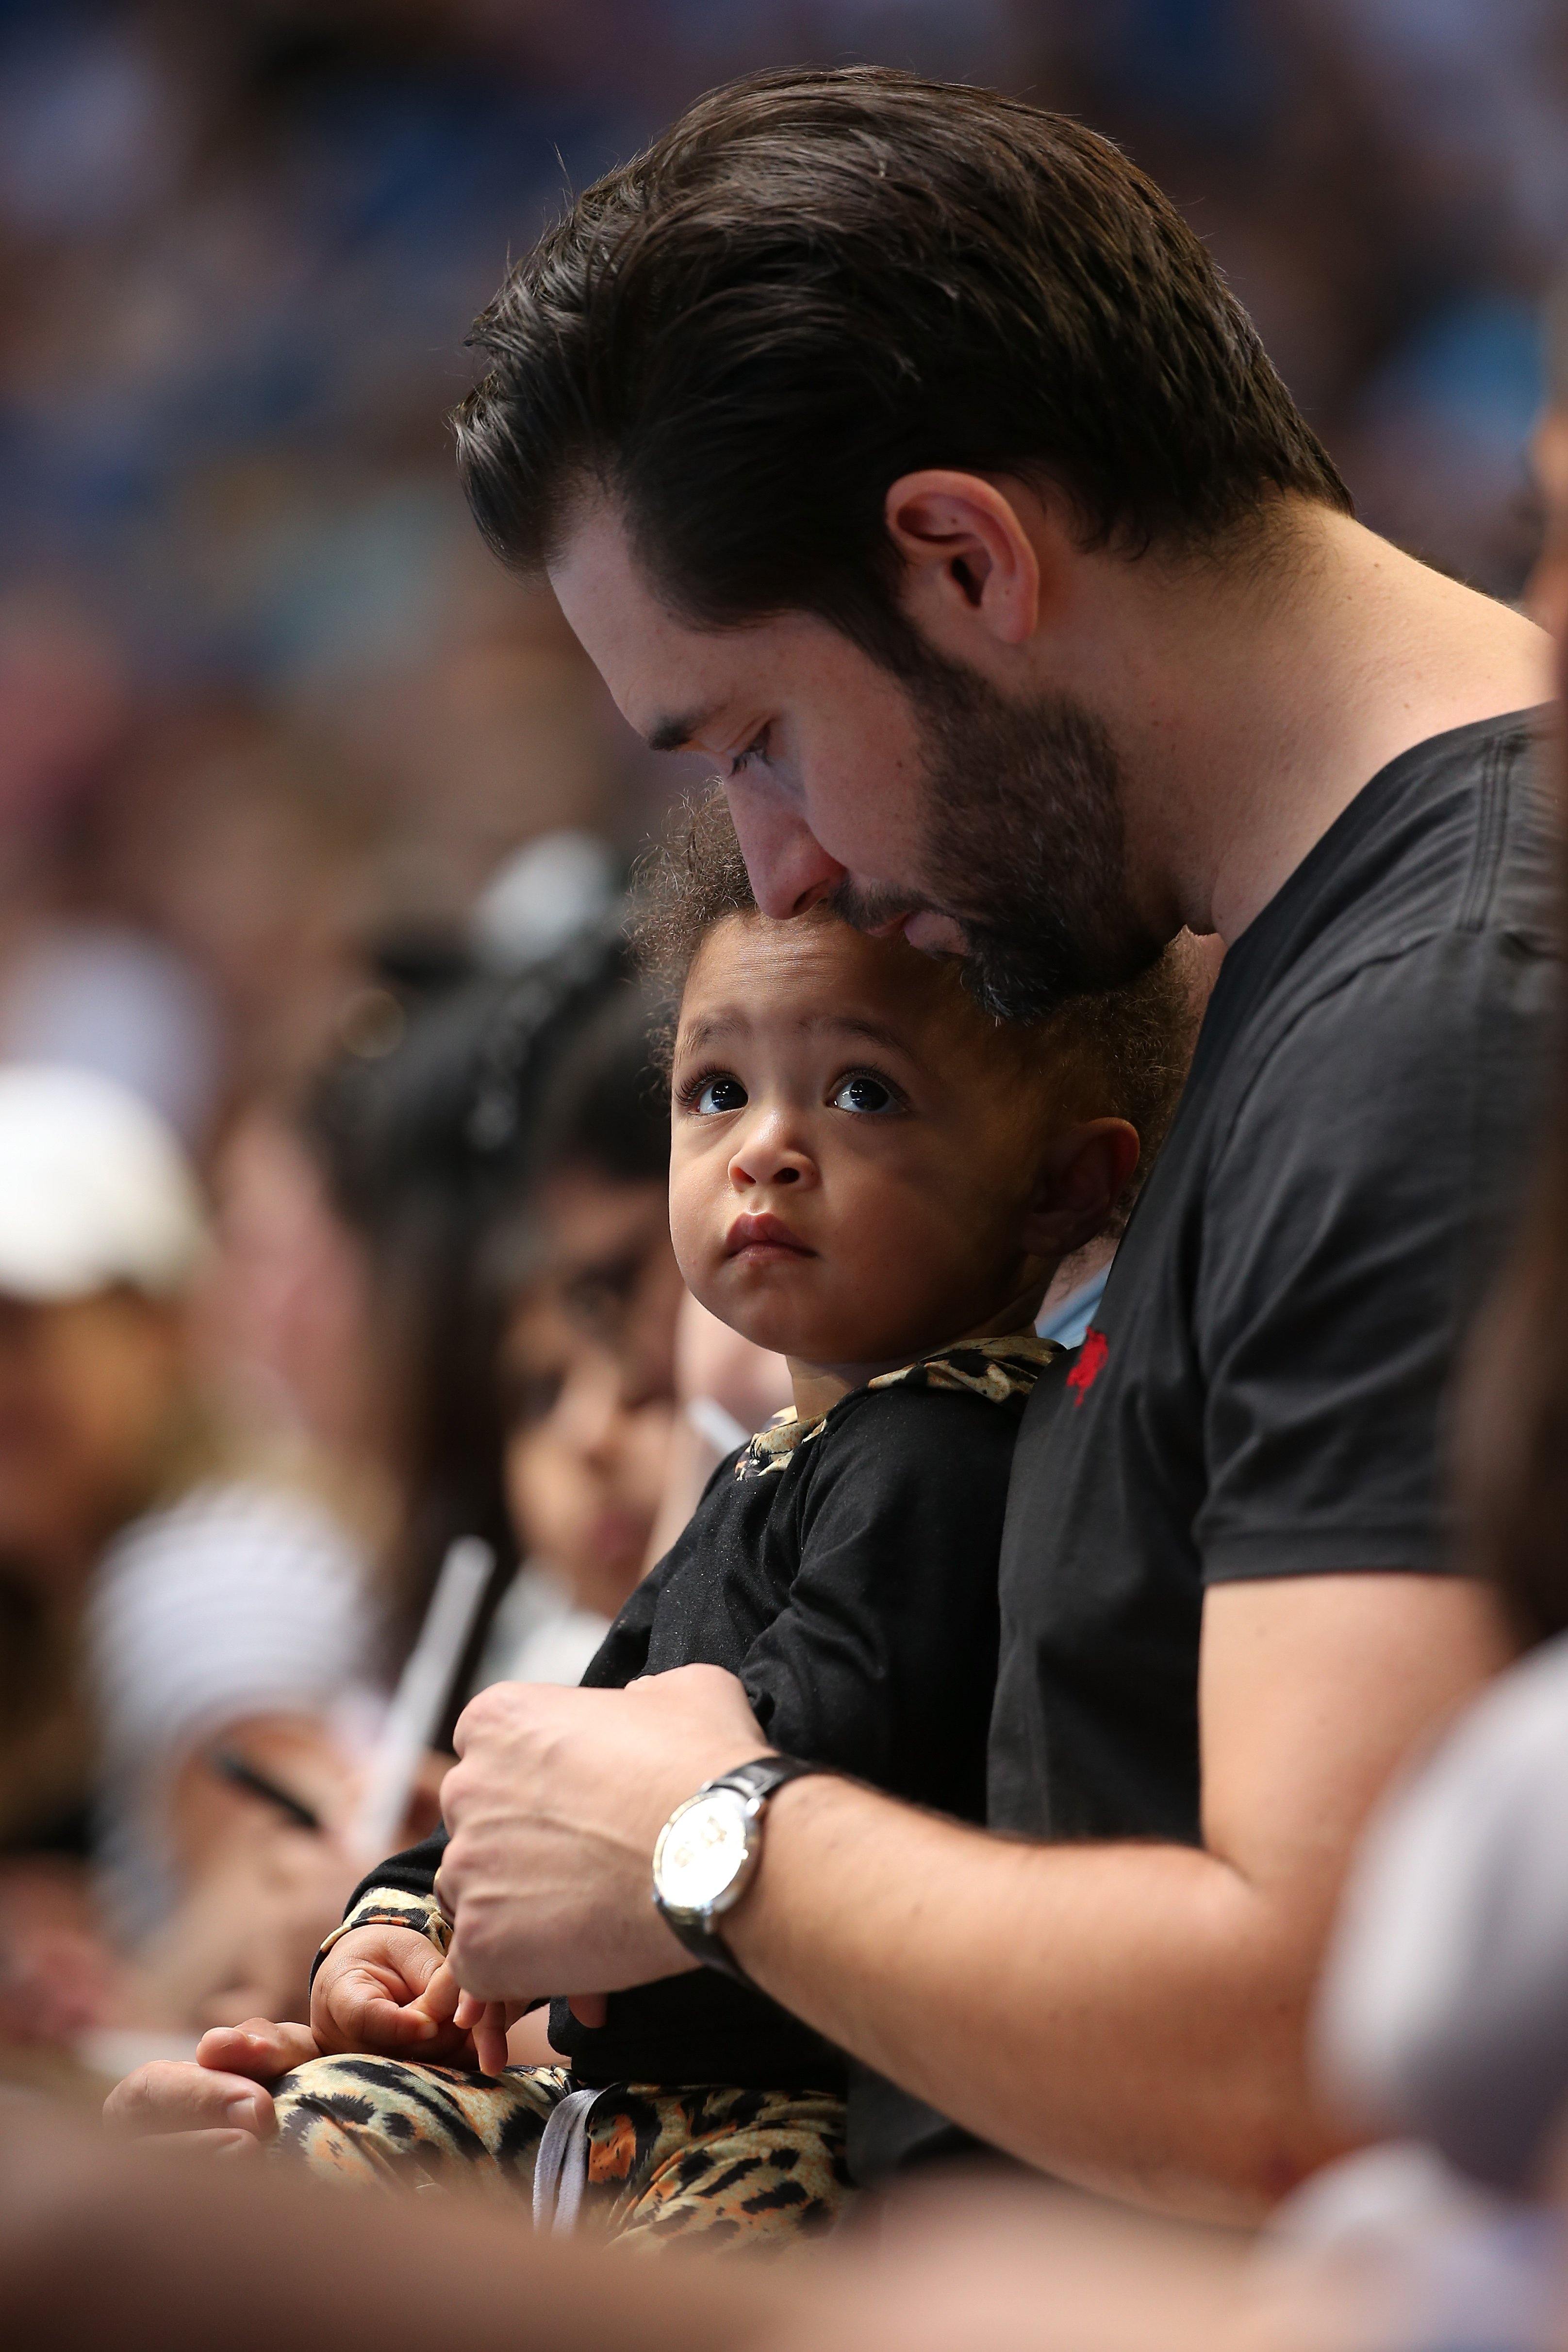 Alexix Ohanian and his daughter, Olympia Ohanian Jr. during the 2019 Hopman Cup at RAC Arena. | Source: Getty Images